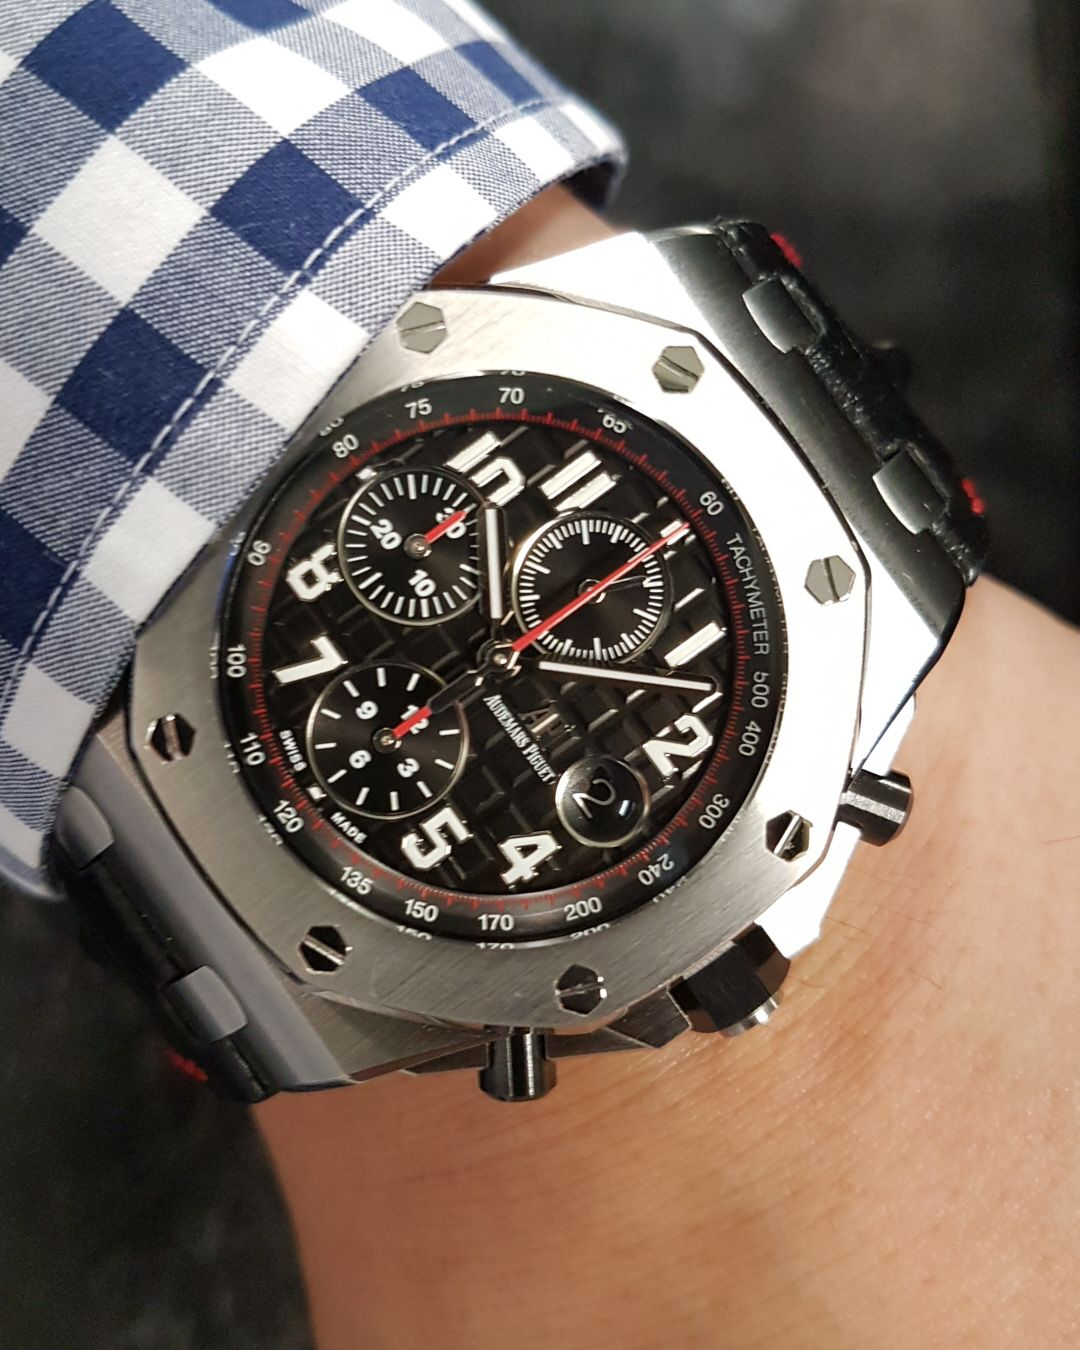 Audemars piguet royal oak offshore 39 vampire 39 26470st oo watches pinterest for Royal oak offshore vampire